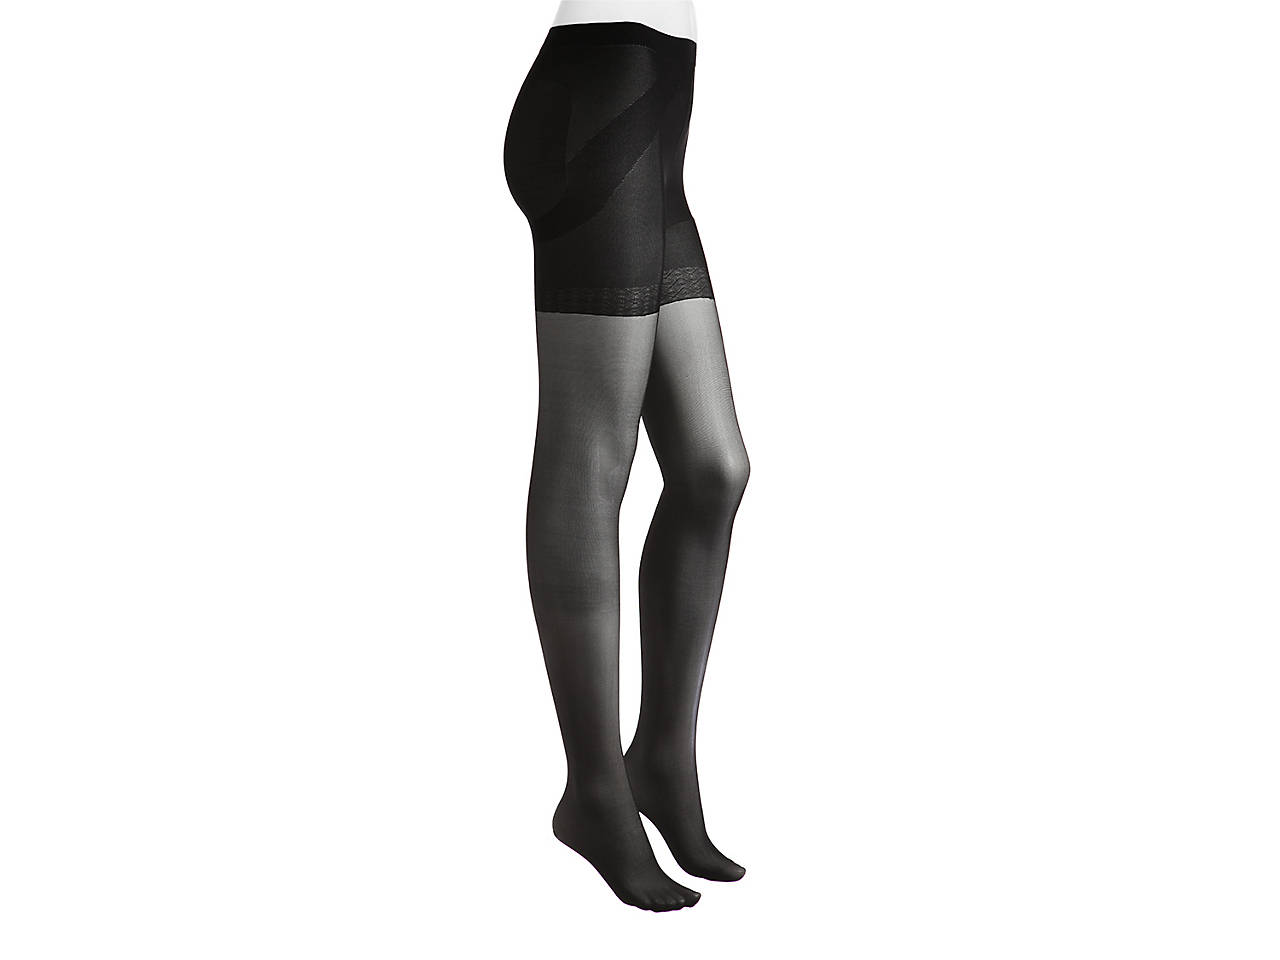 33a68b42d03 Via Spiga - Luxury Flawless Finish Women s Control Top Tights ...